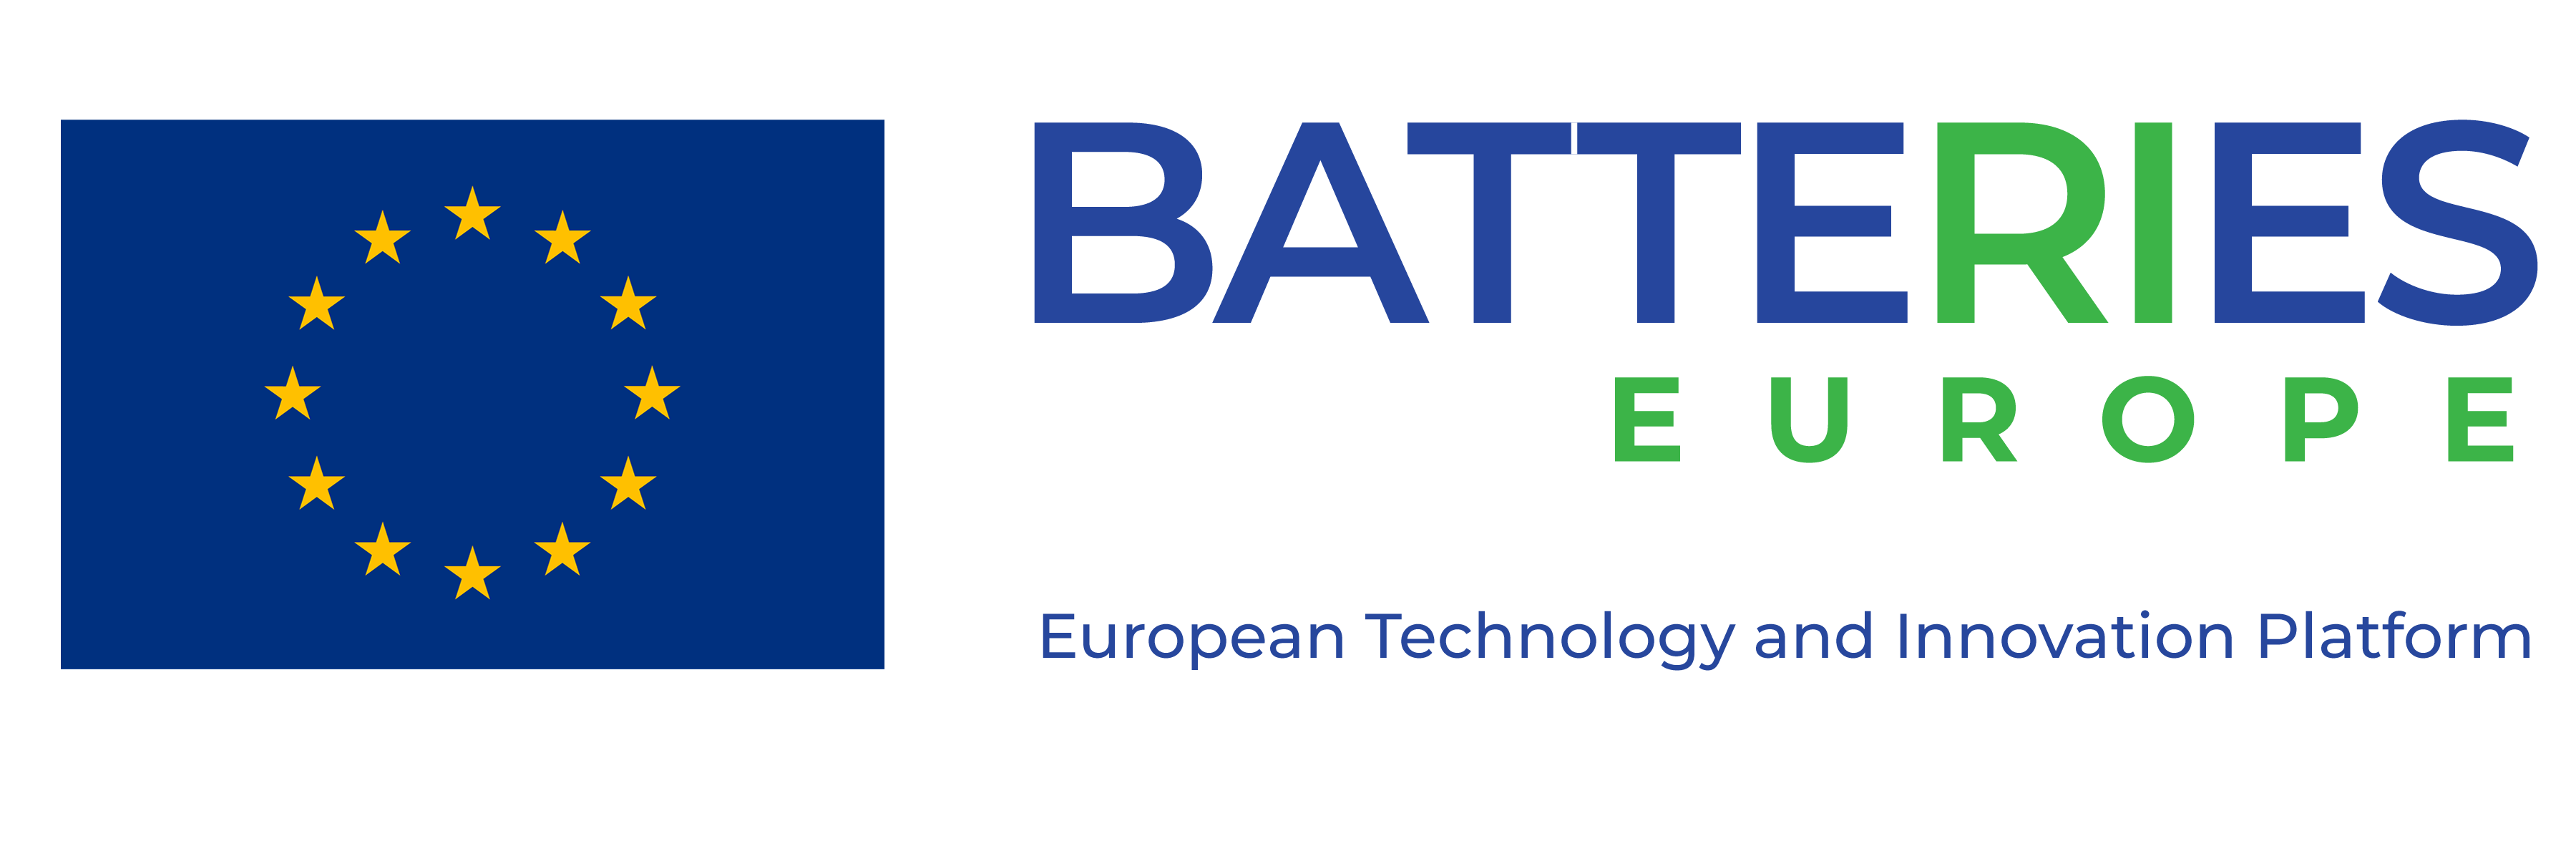 batteries-logo-final